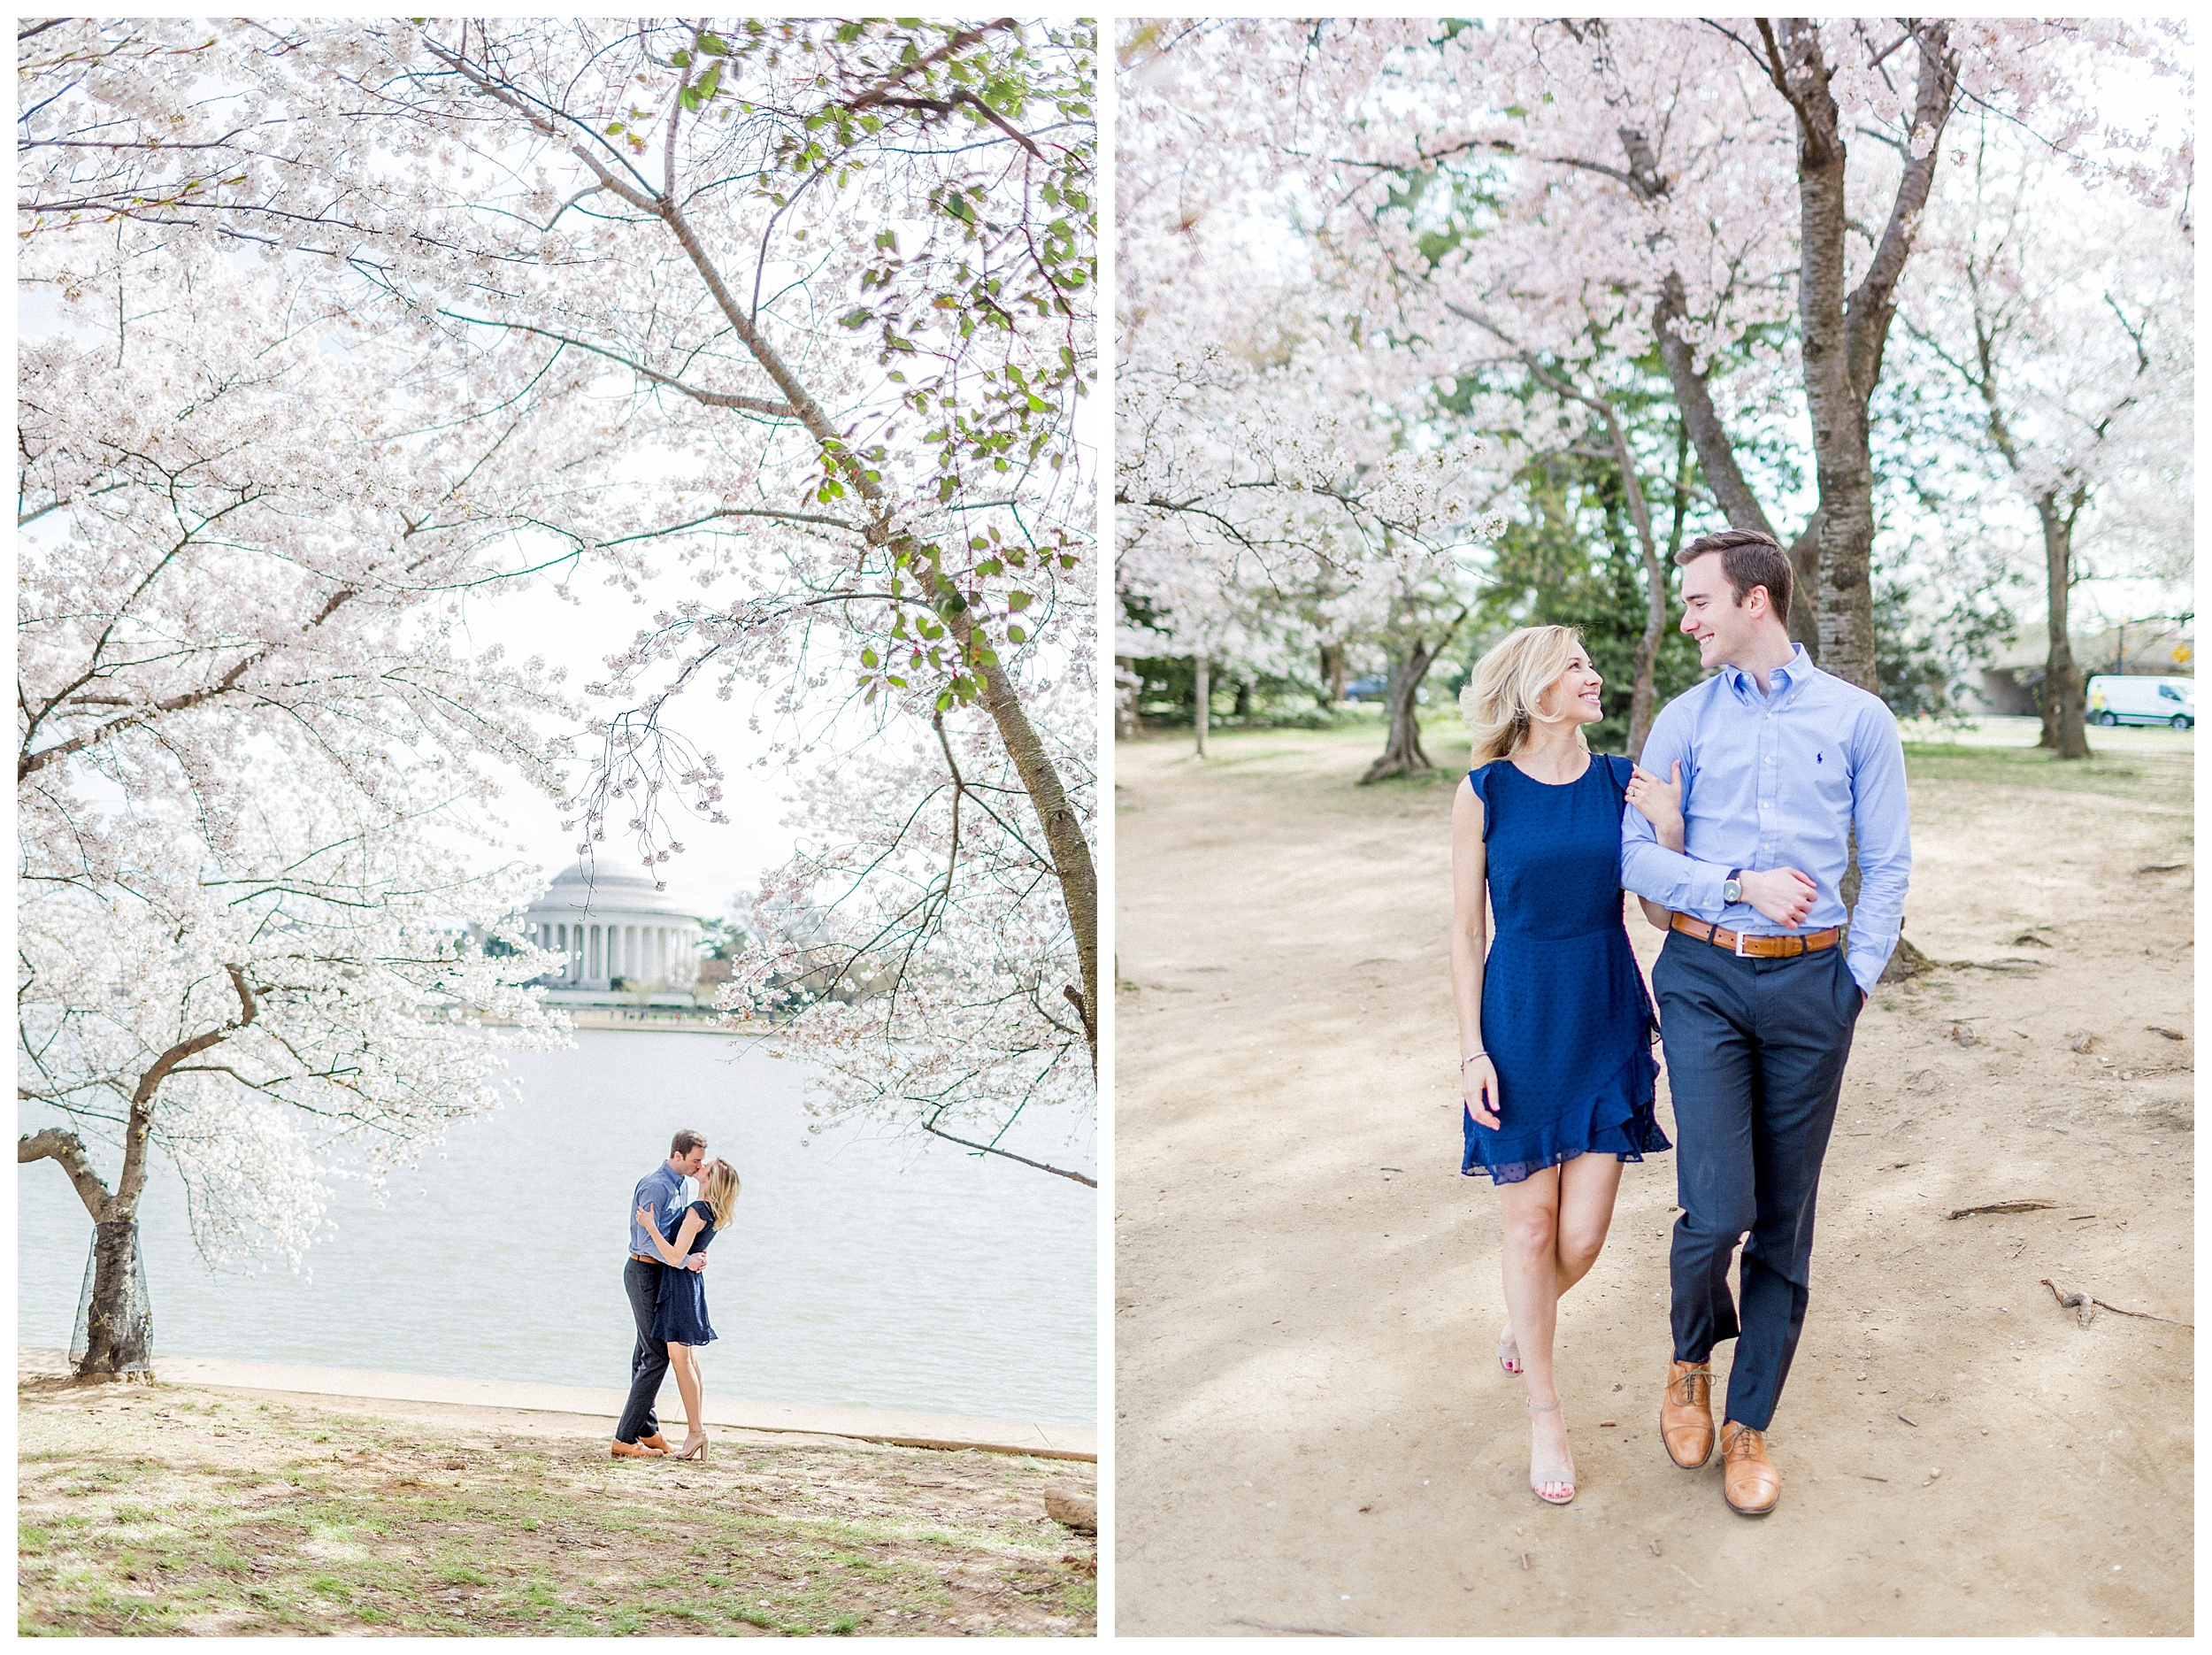 District of Columbia Cherry Blossom Engagement Session_0030.jpg